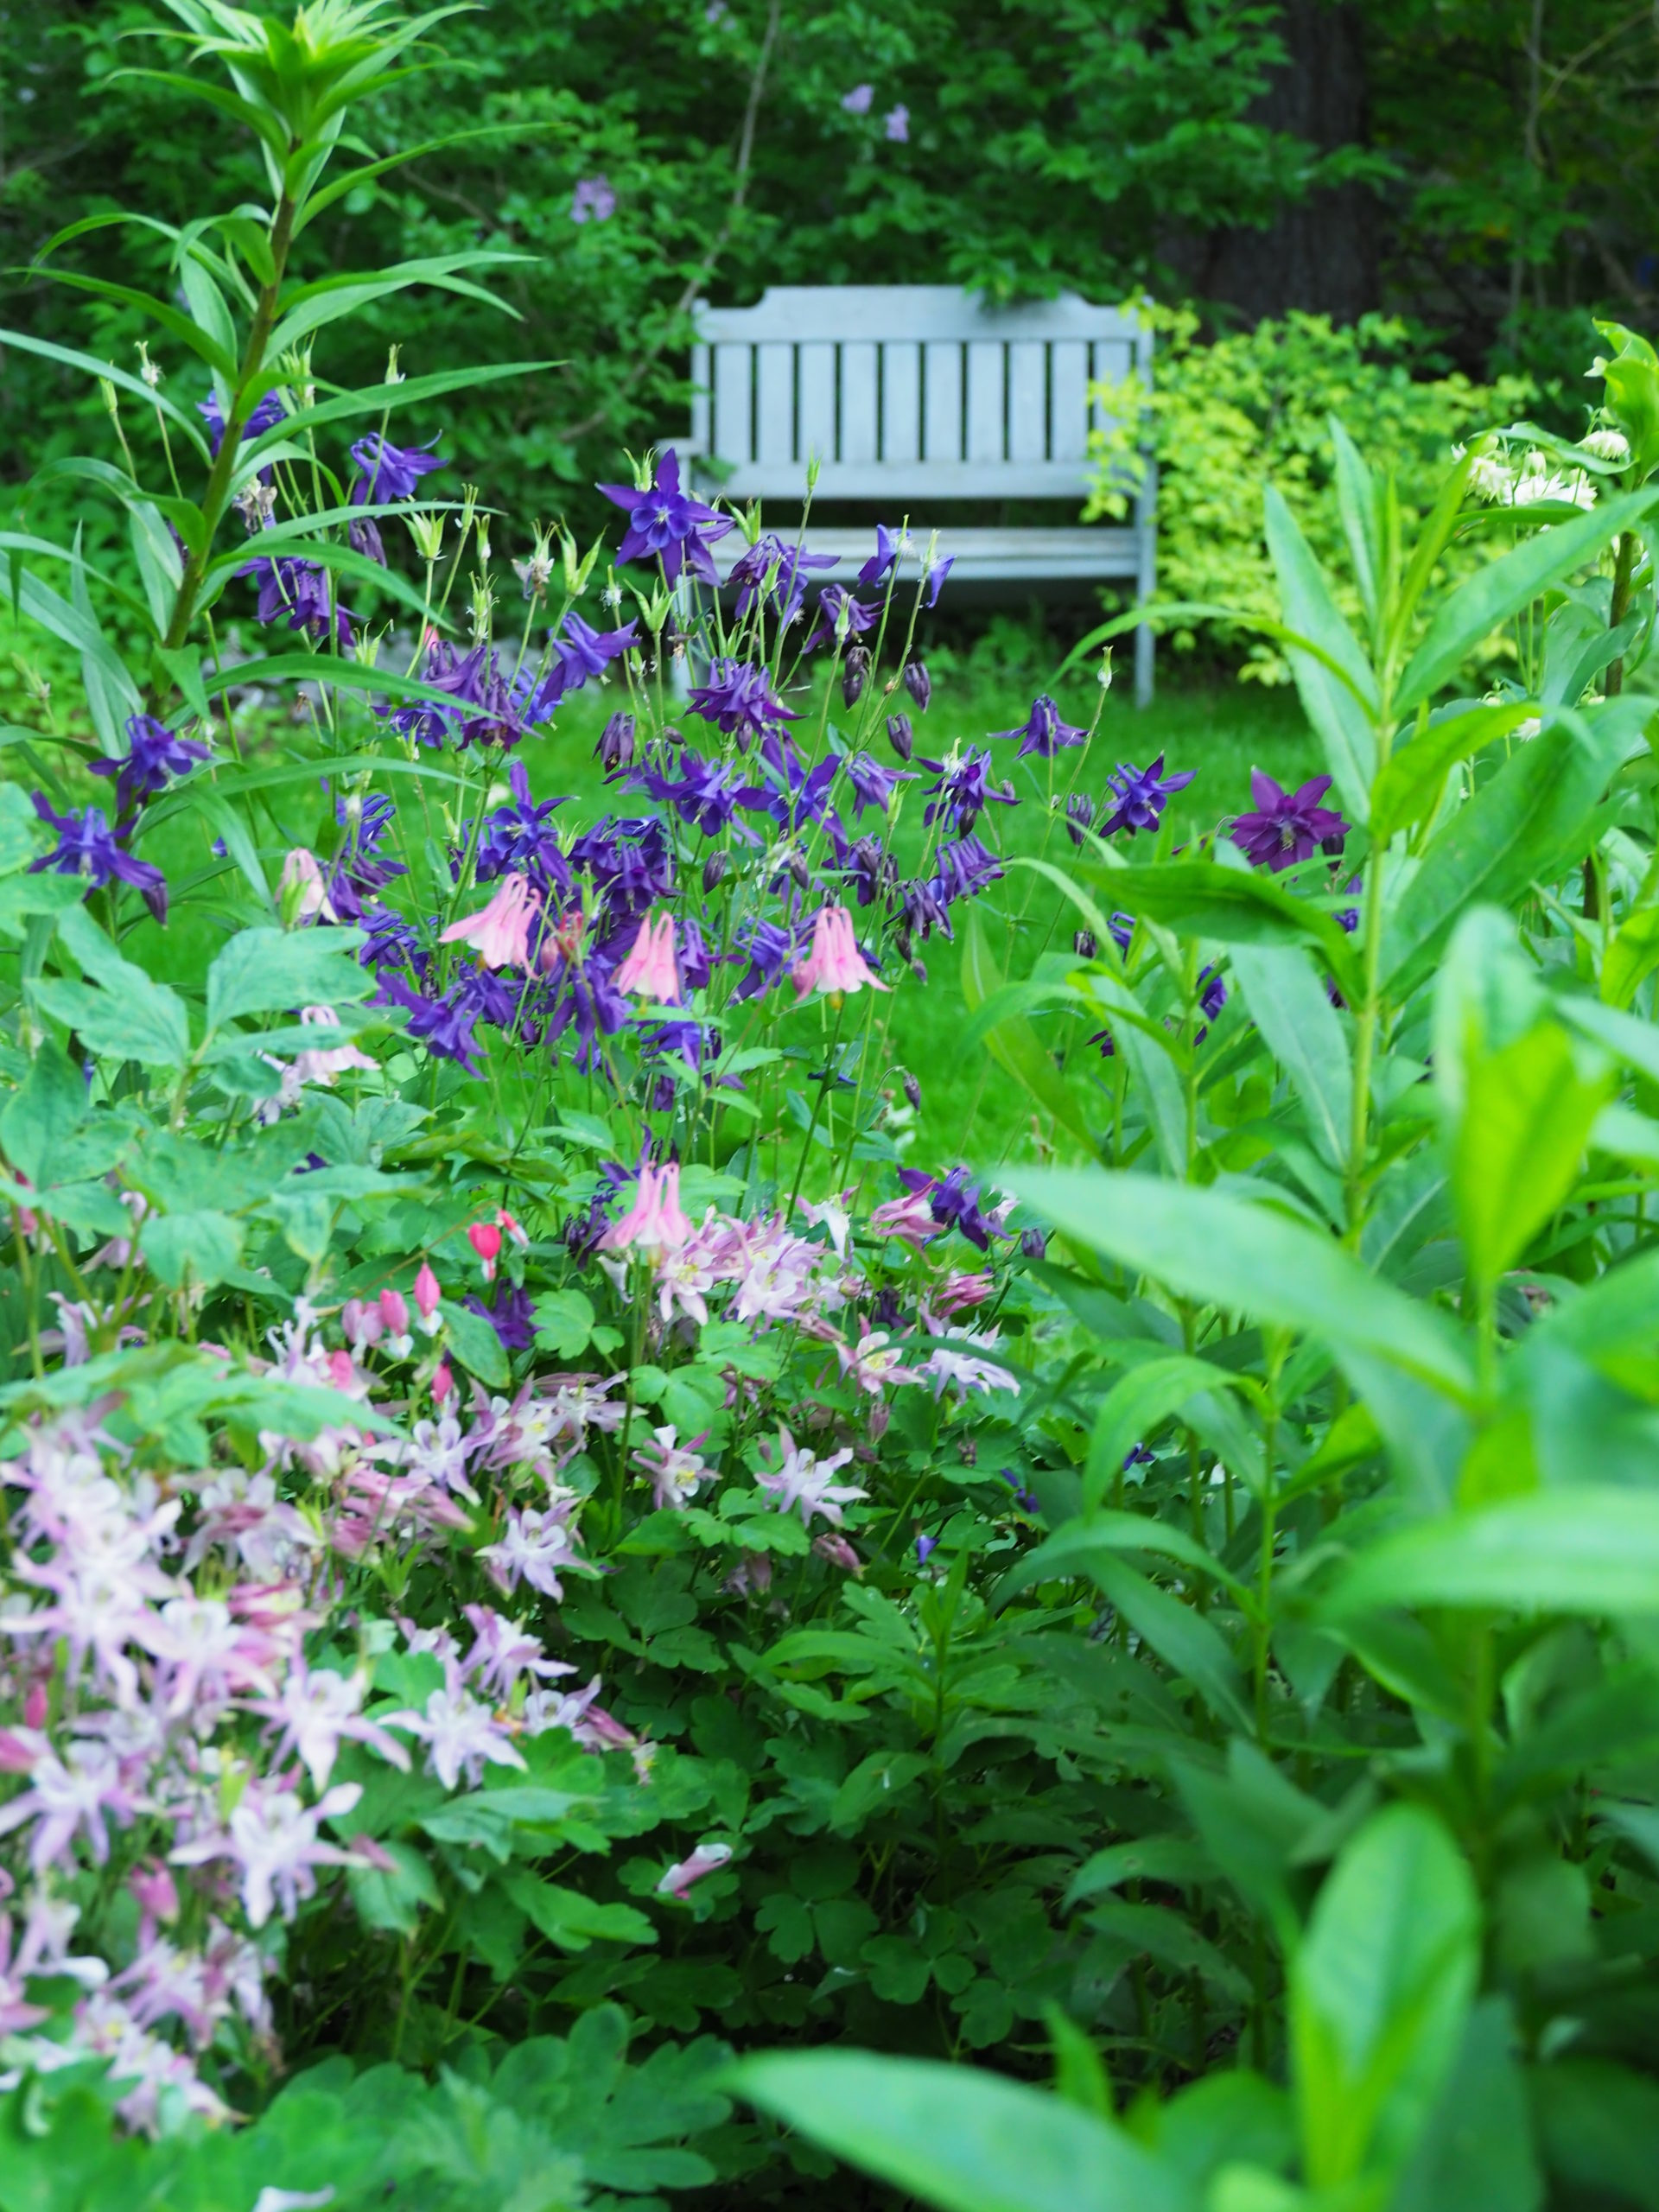 When columbines are allowed to cross pollinate in the garden this can result in an interesting show of Aquilegia colors, styles and heights if seeds are allowed to resow naturally or after being collected. ANDREW MESSINGER